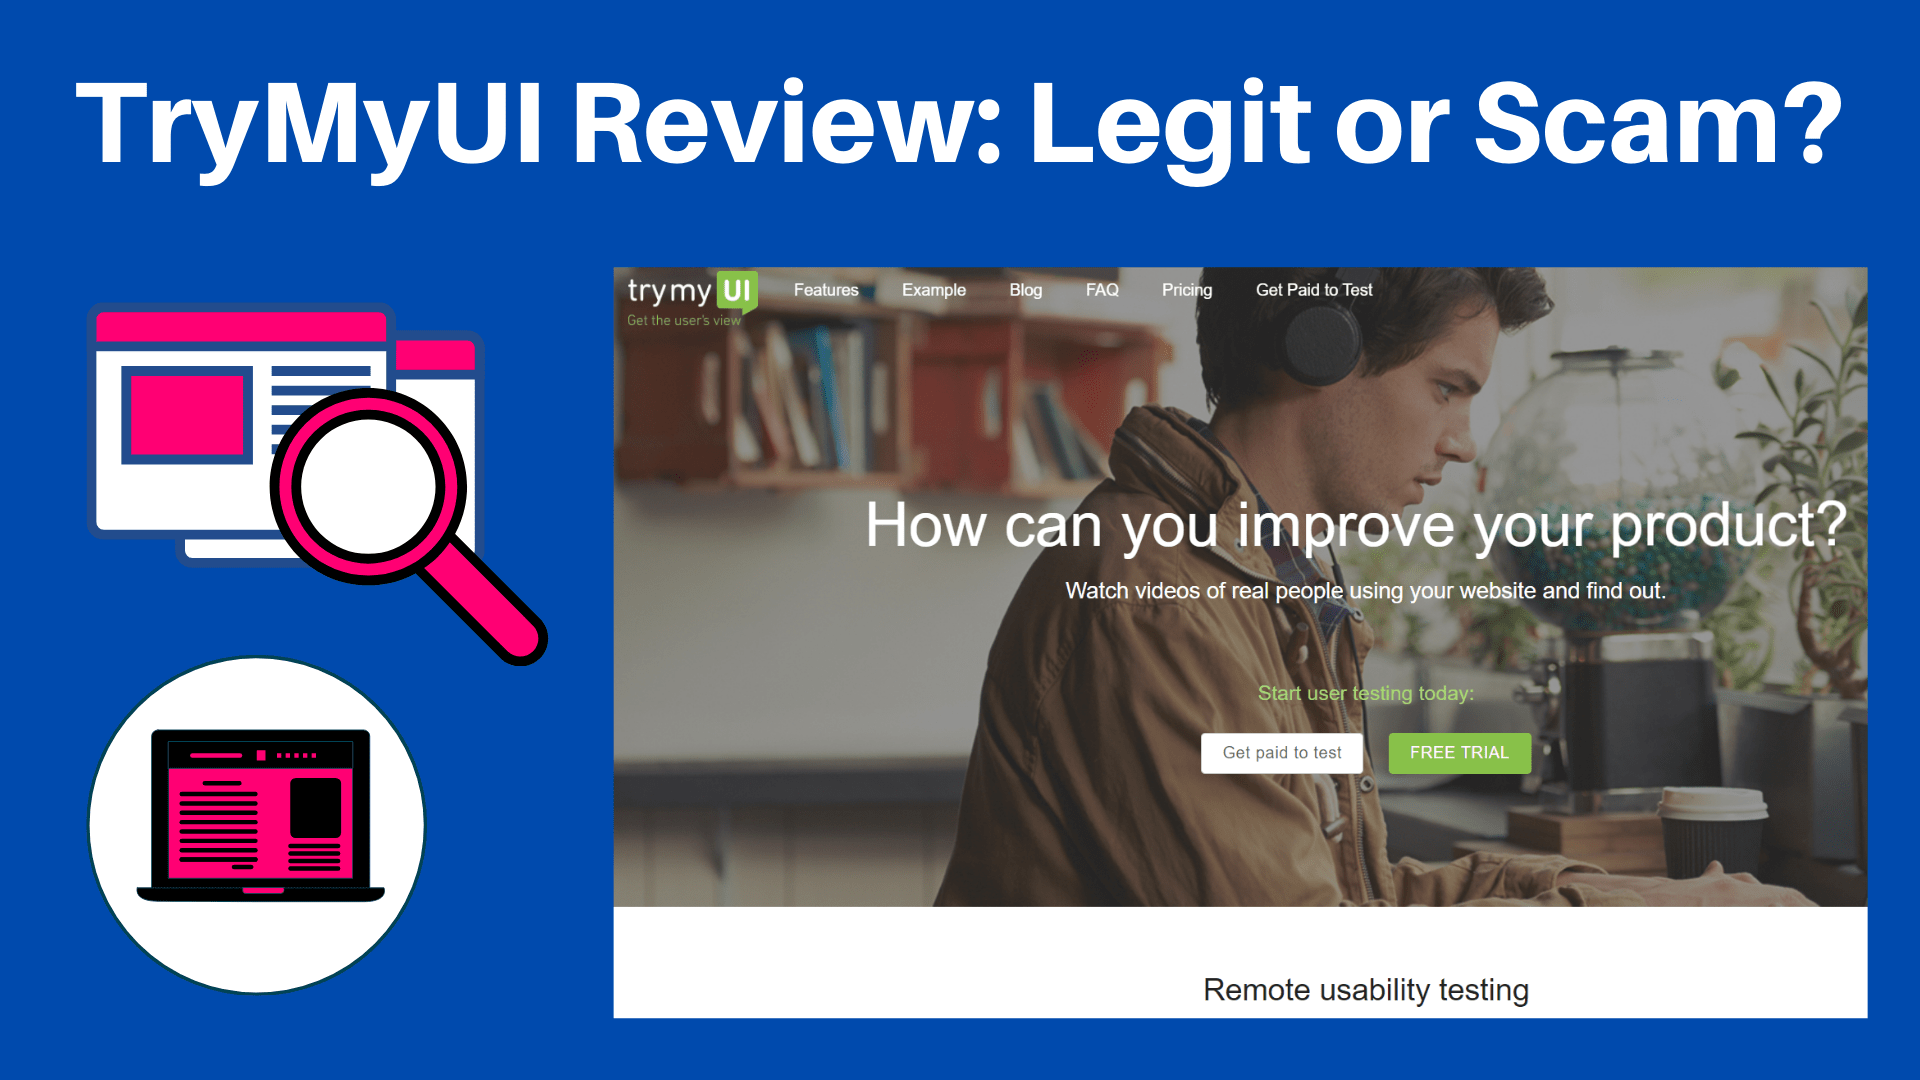 TryMyUI Review: Earning By Testing Websites? (Know The Truth)